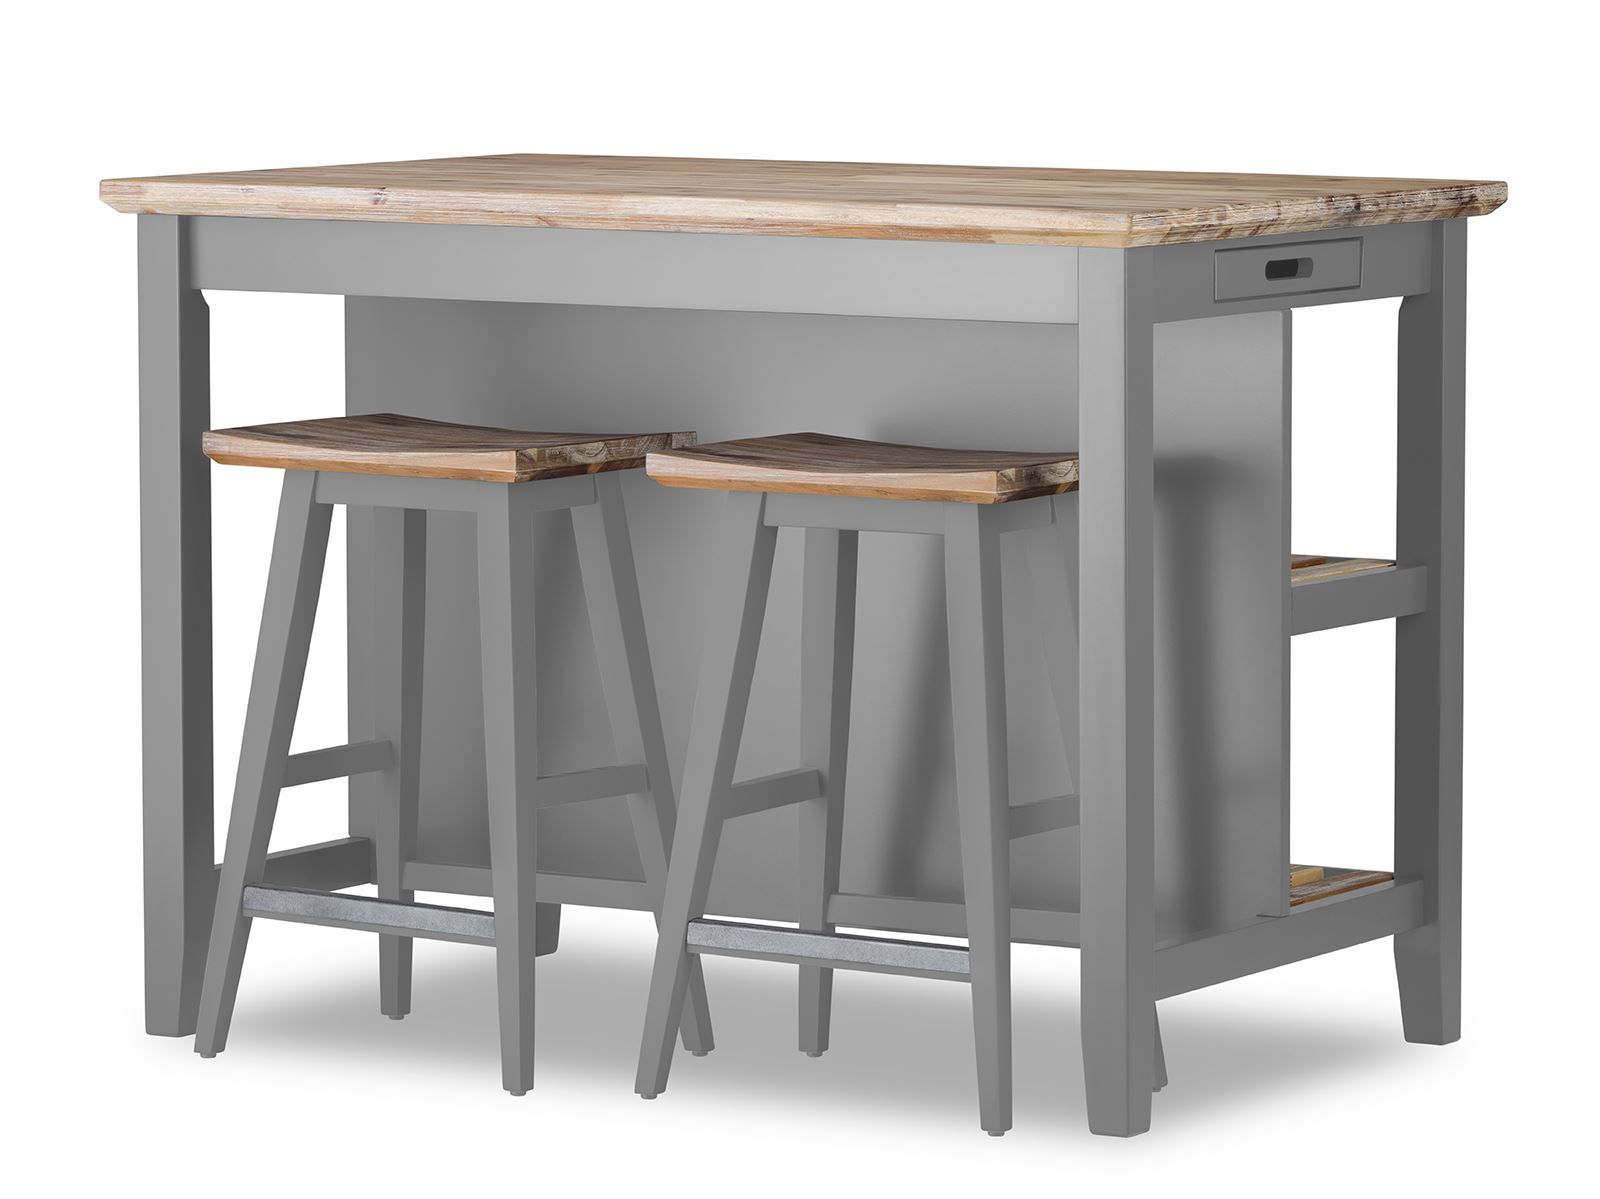 Florence Breakfast Bar With 2 Large Shelves Small Kitchen Island With Storage Ebay Small Kitchen Island Small Kitchen Kitchen Bar Table